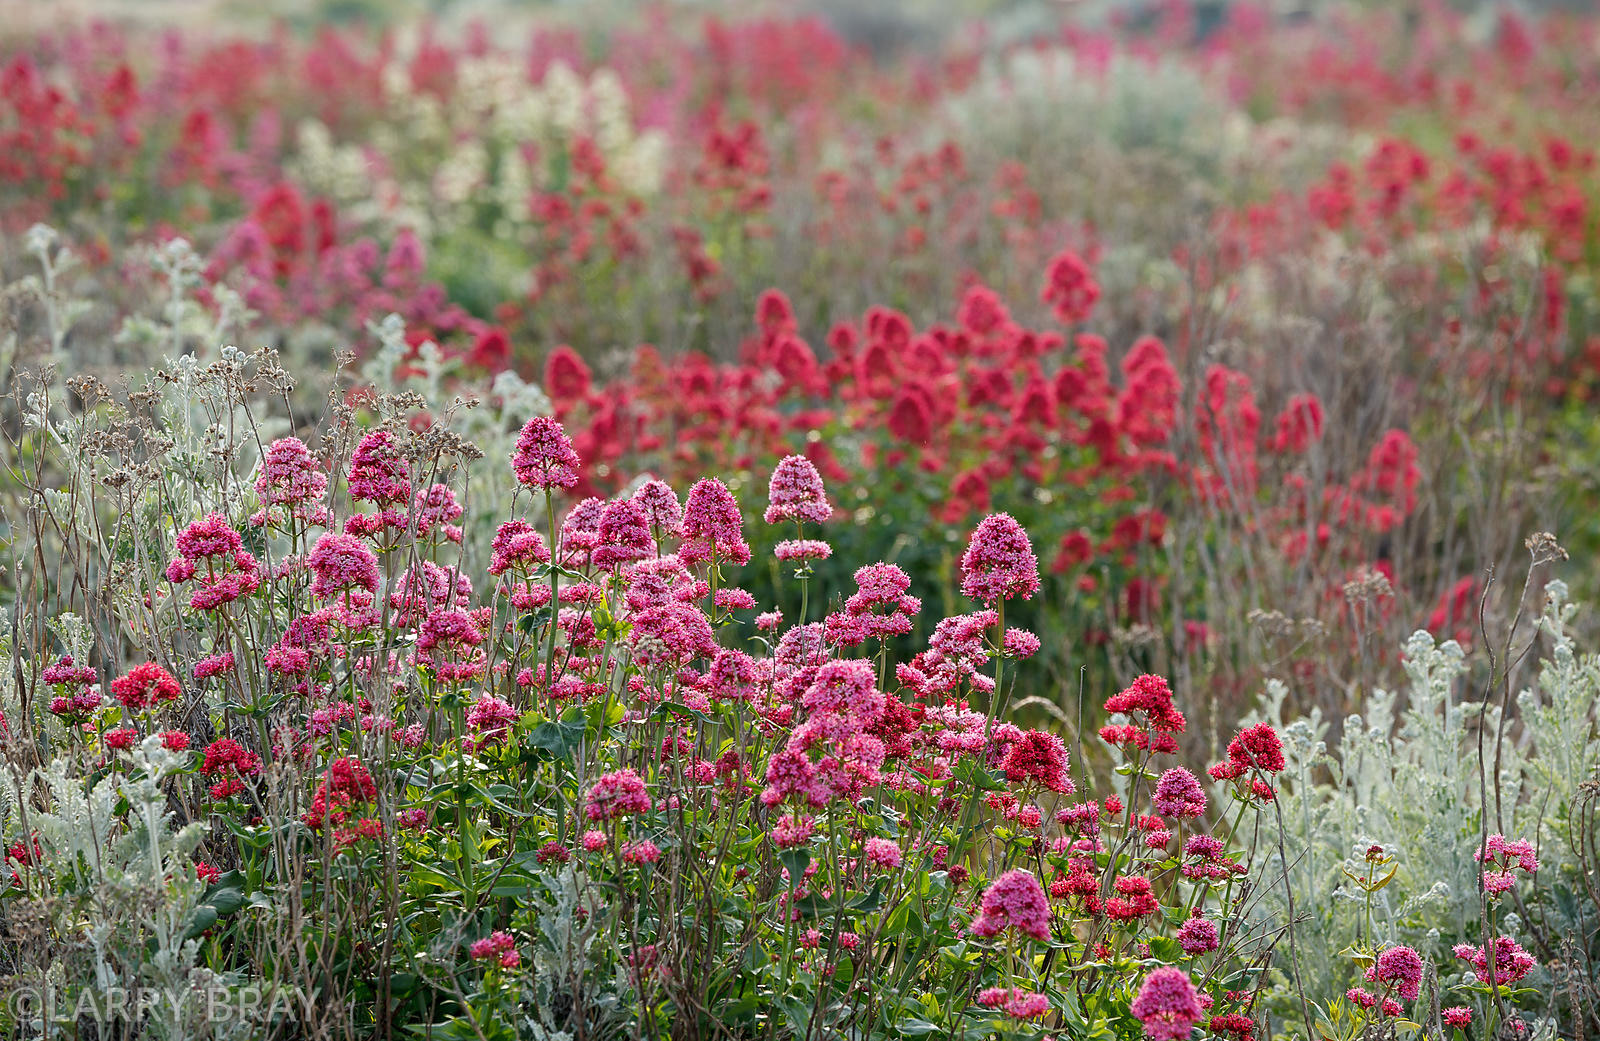 photos   Pink & red flowers on the beach in Shoreham-by-Sea, West